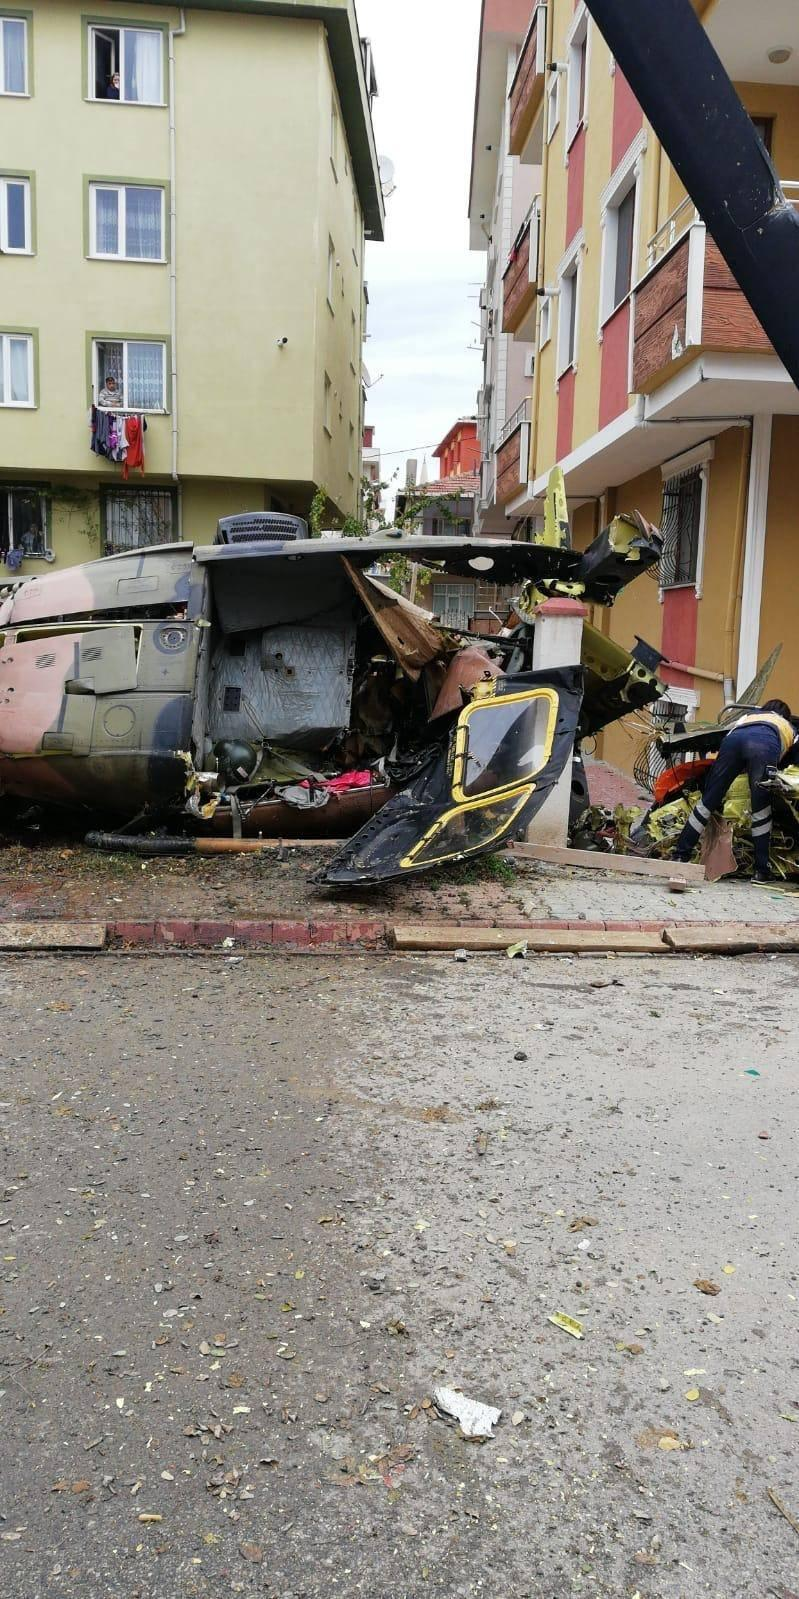 4 dead as chopper falls on residential area in Istanbul (PHOTO/VIDEO)